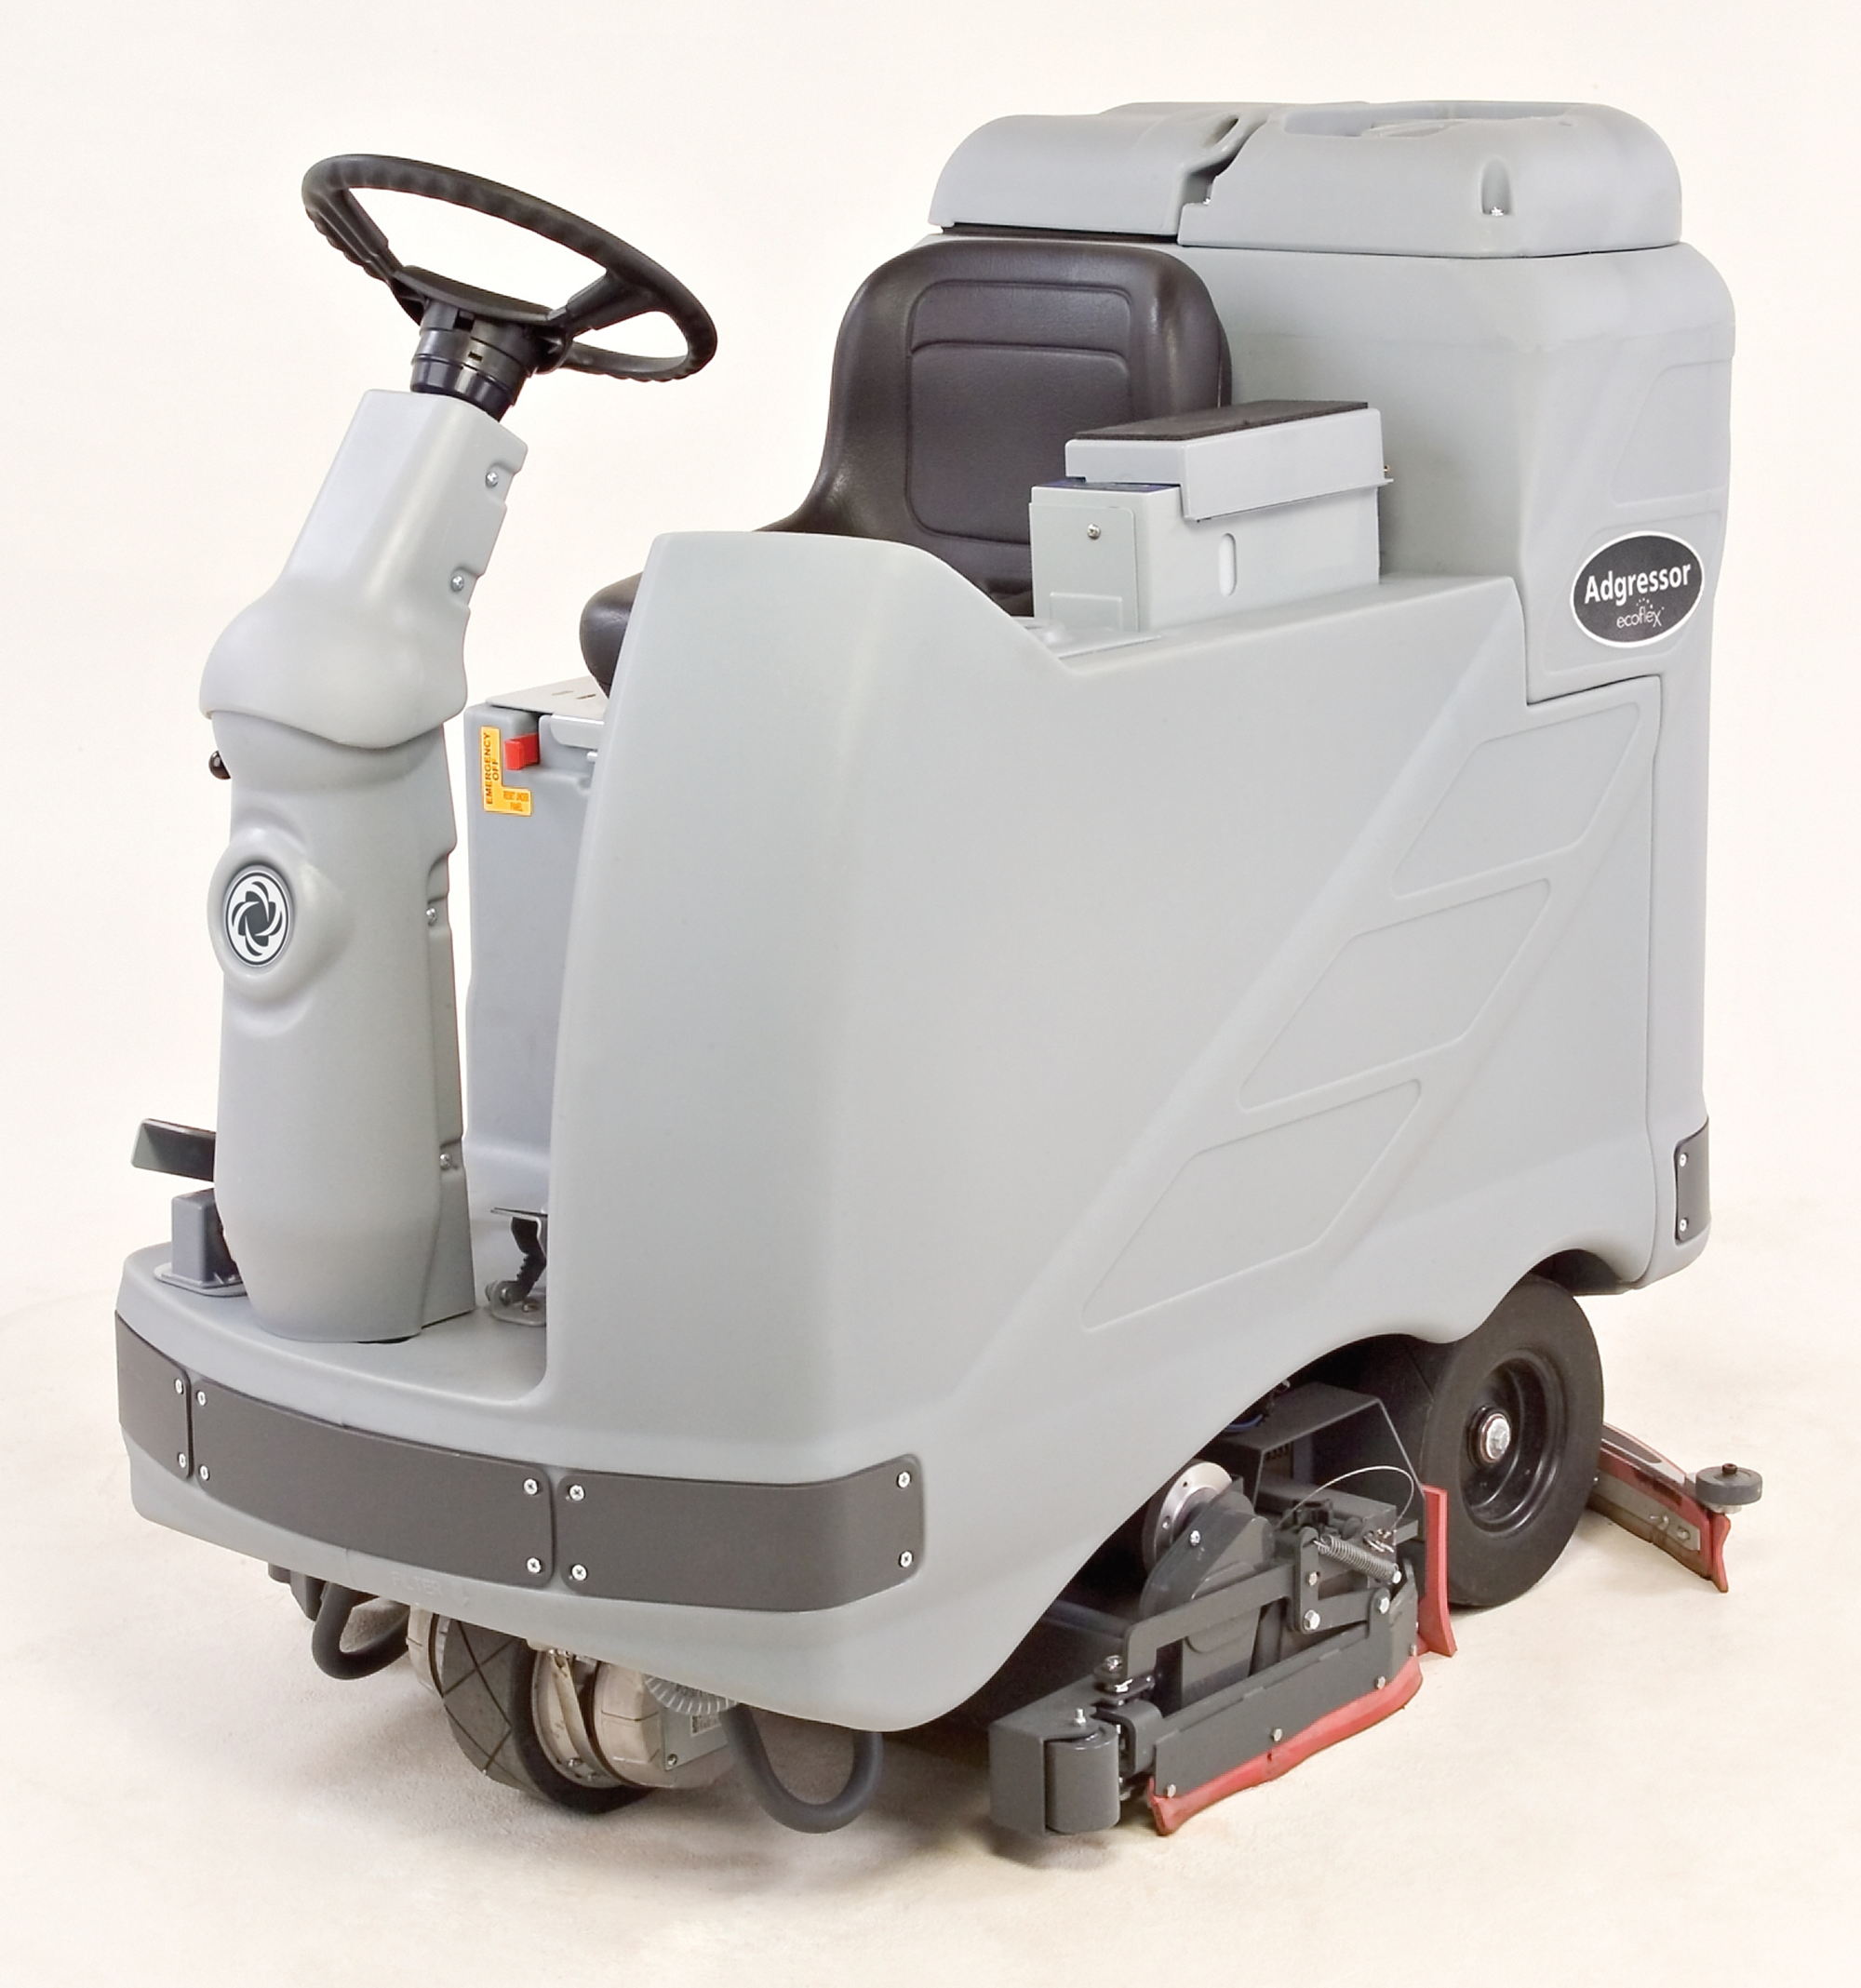 Product, Floor cleaning, Scrubber dryers, Stand-on and ride-on scrubber dryers, Nilfisk, ADGRESSOR 3220C 310AH OBC